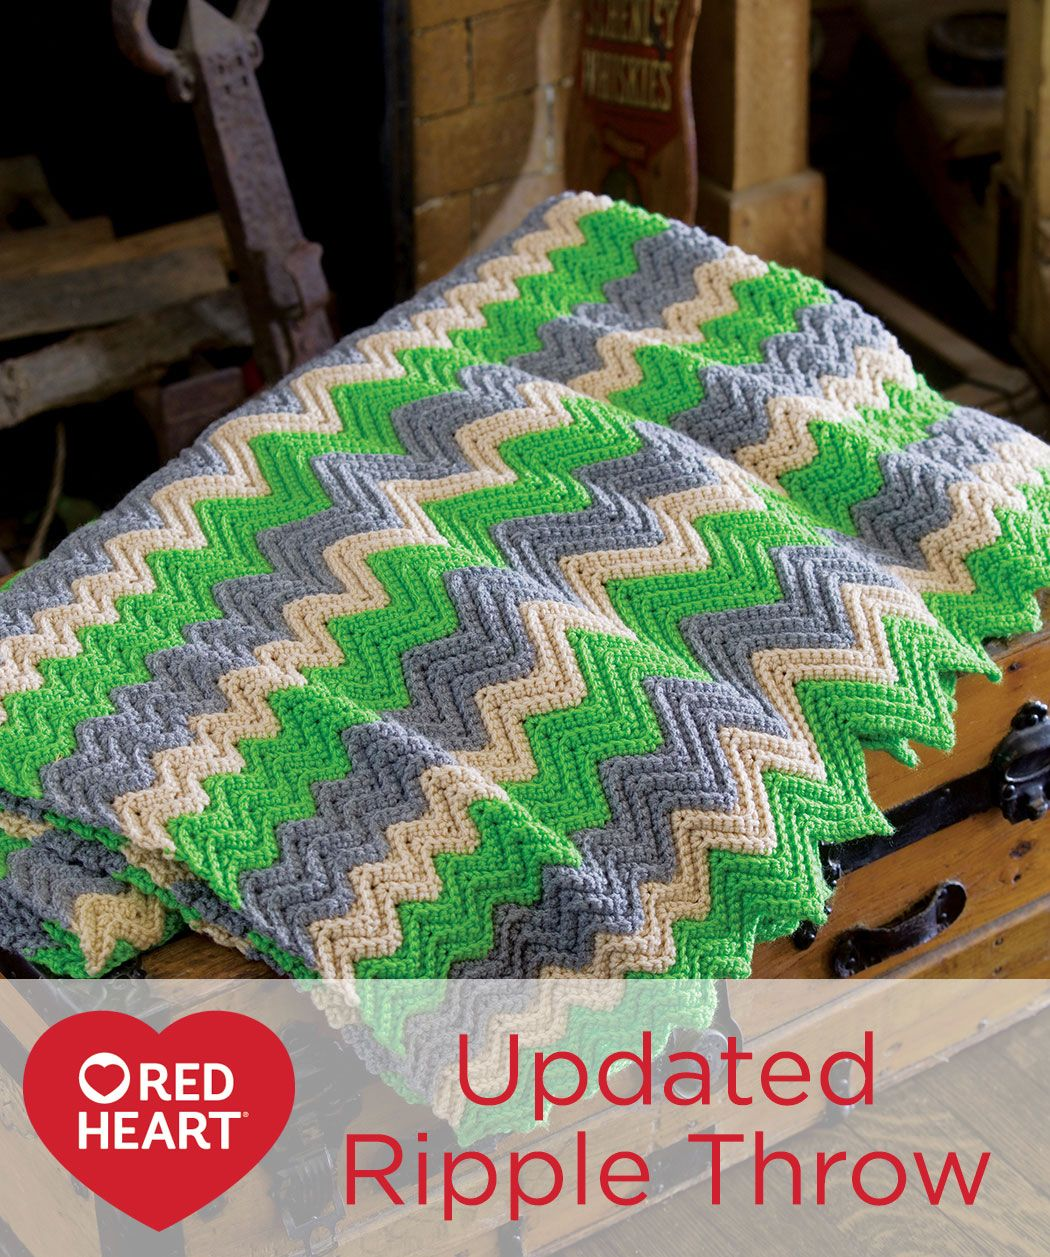 Updated Ripple Throw Free Crochet Pattern In Red Heart